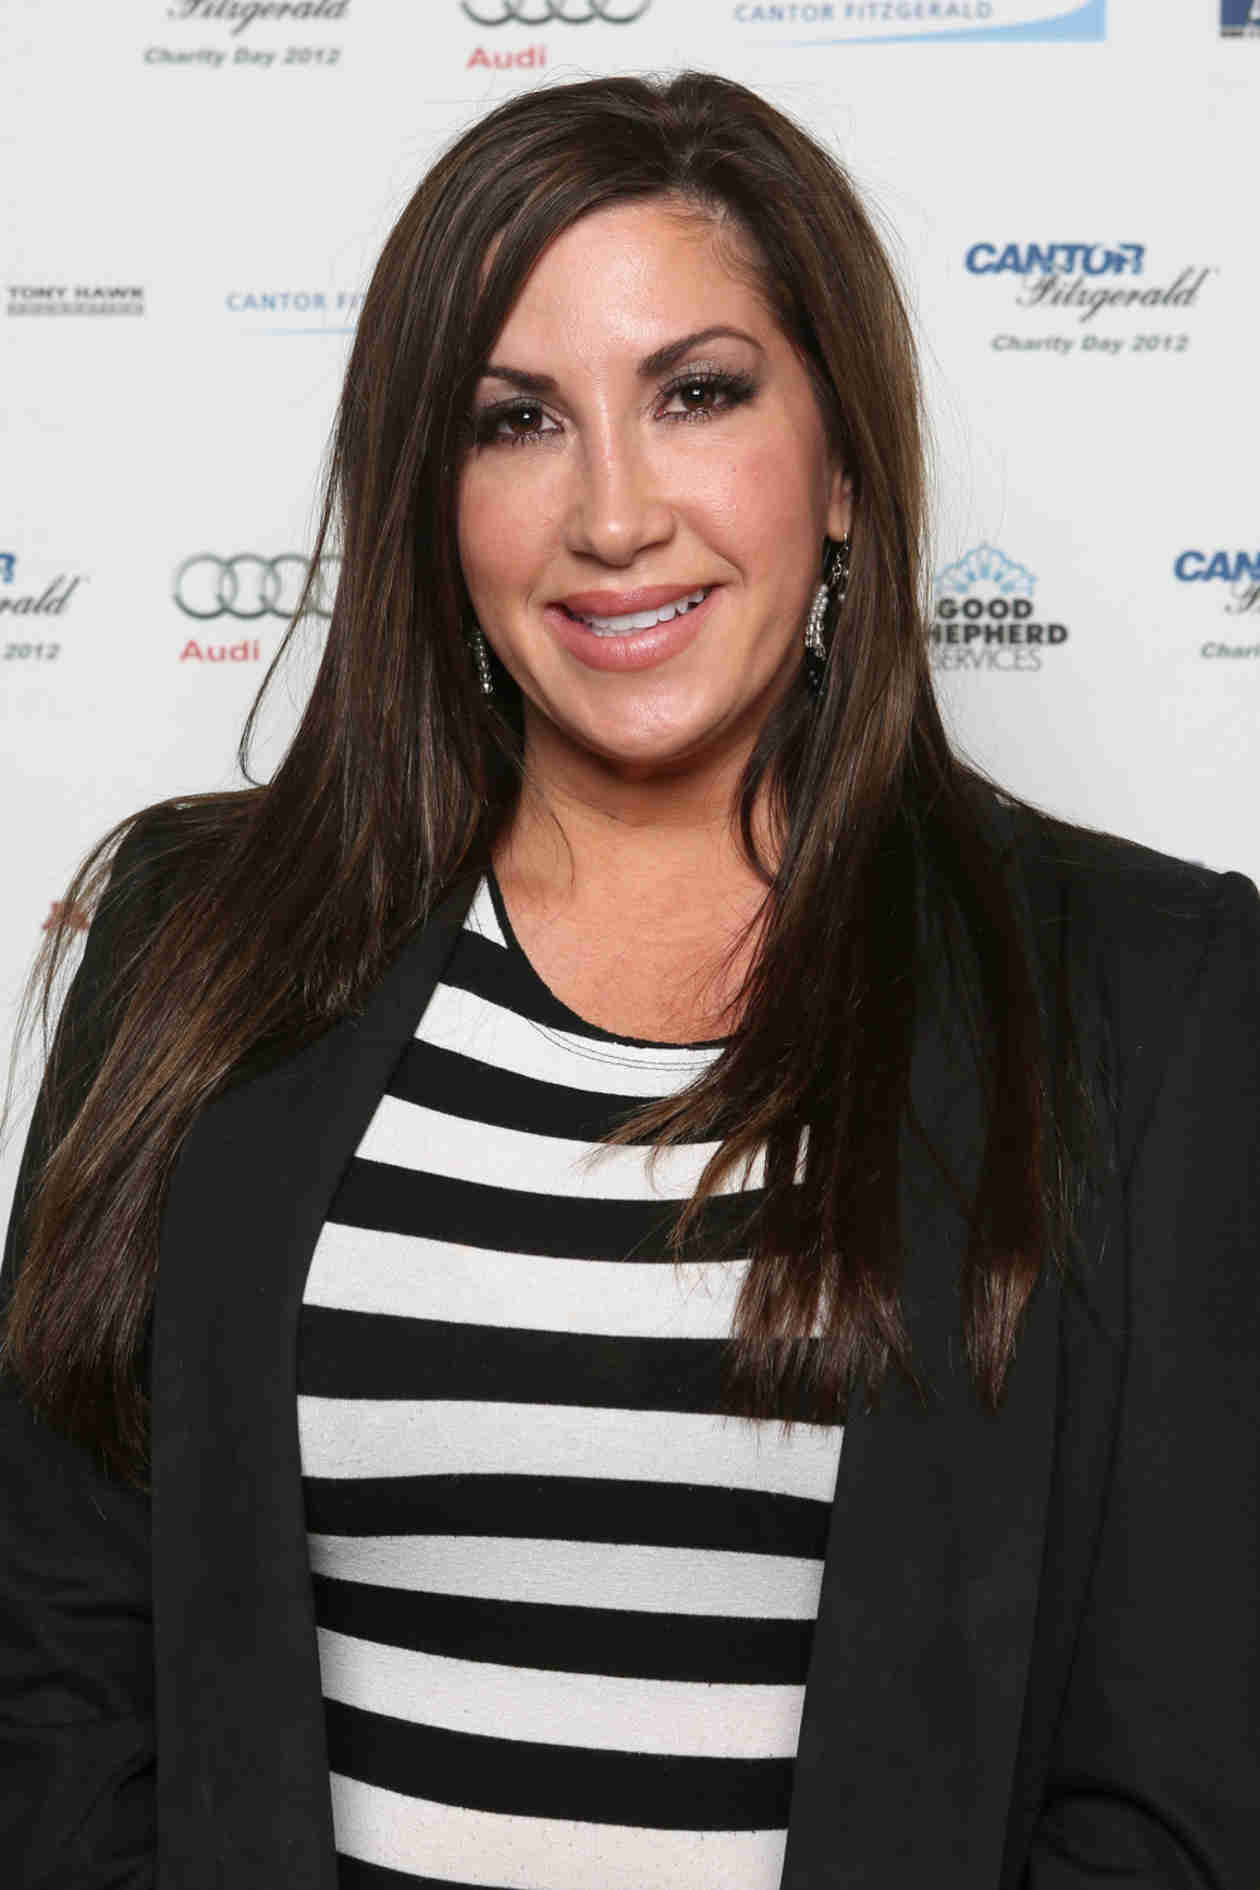 Would Jacqueline Laurita Return to Real Housewives of New Jersey?